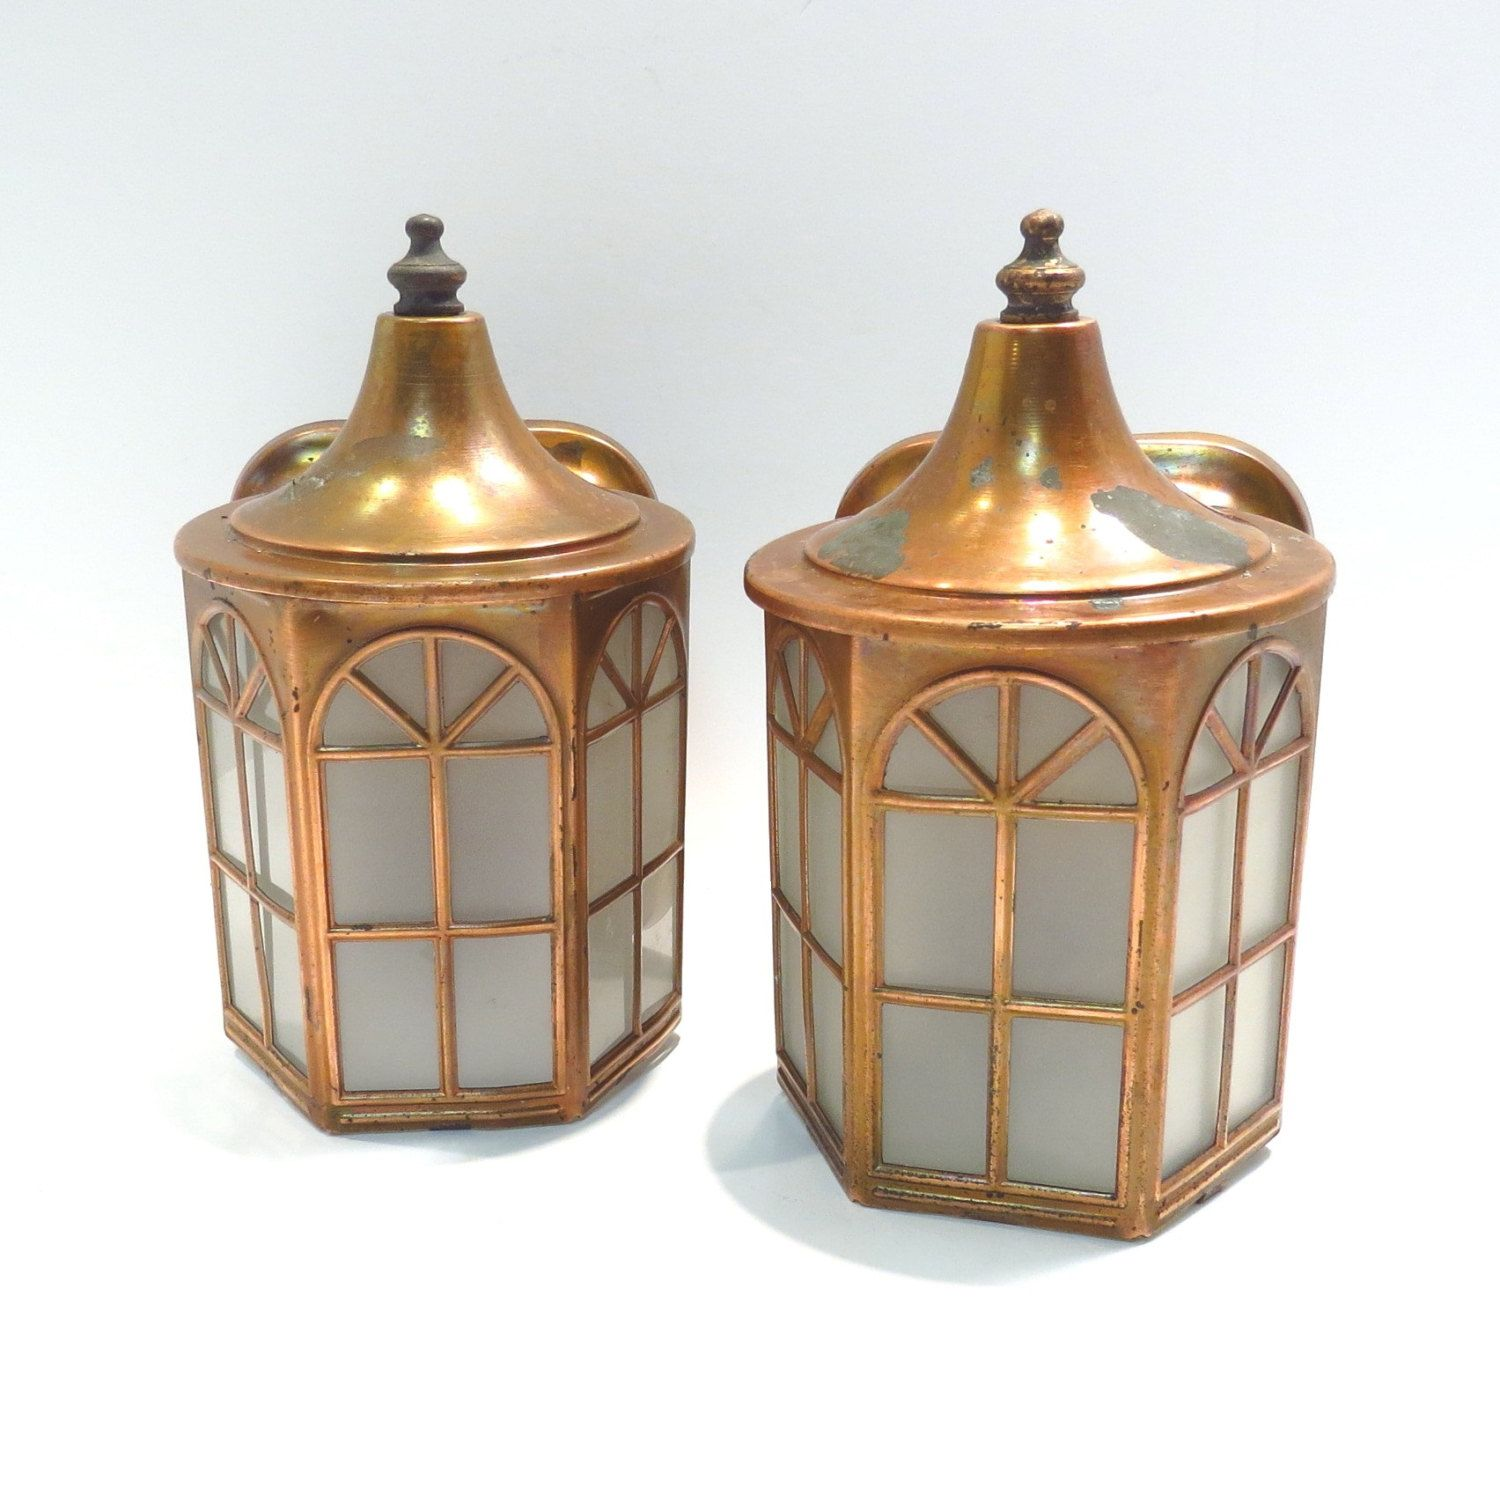 Pair Copper Artolier Arts And Crafts Porch Light Vintage 1940s Frosted Glass Shabby Chic Outdoor Lights By Vintagecree New Ceramics Porch Lighting Copper Lamps